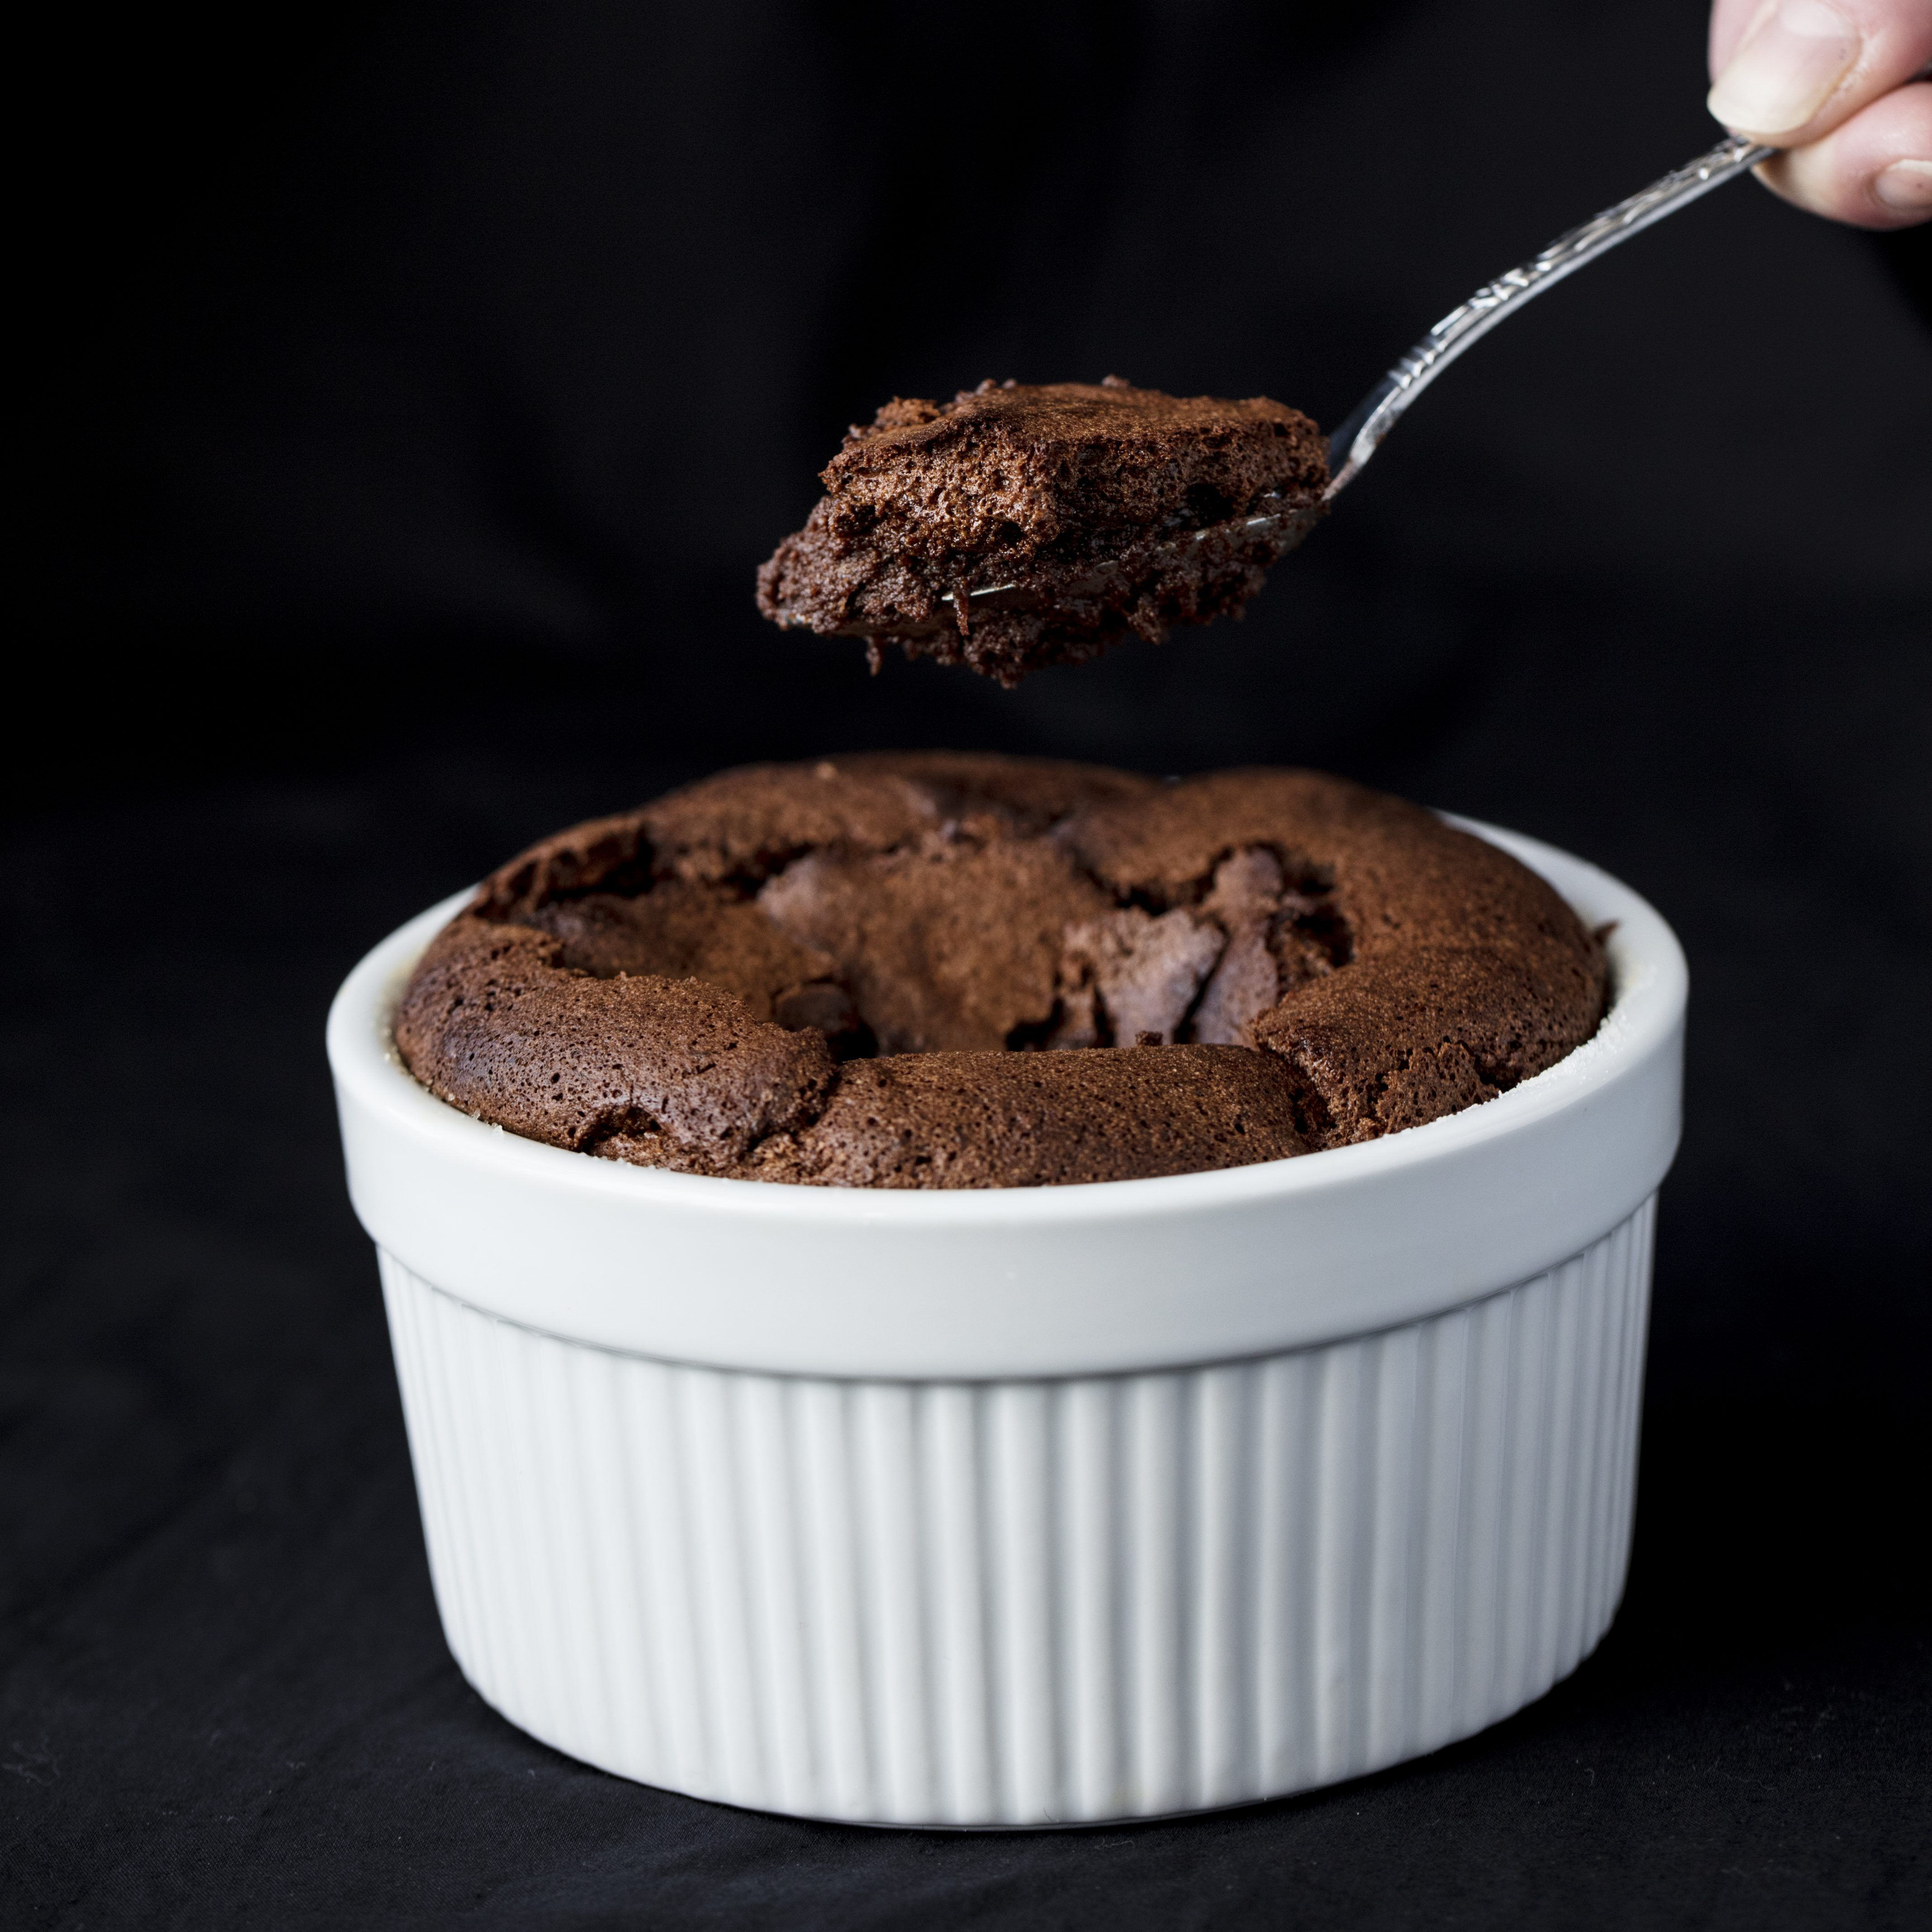 Easy Chocolate Souffle This Easy Chocolate Soufflé will make any chocolate lover swoon! Making soufflés doesn't have to be impossibly hard. You just need a good set of instructions!